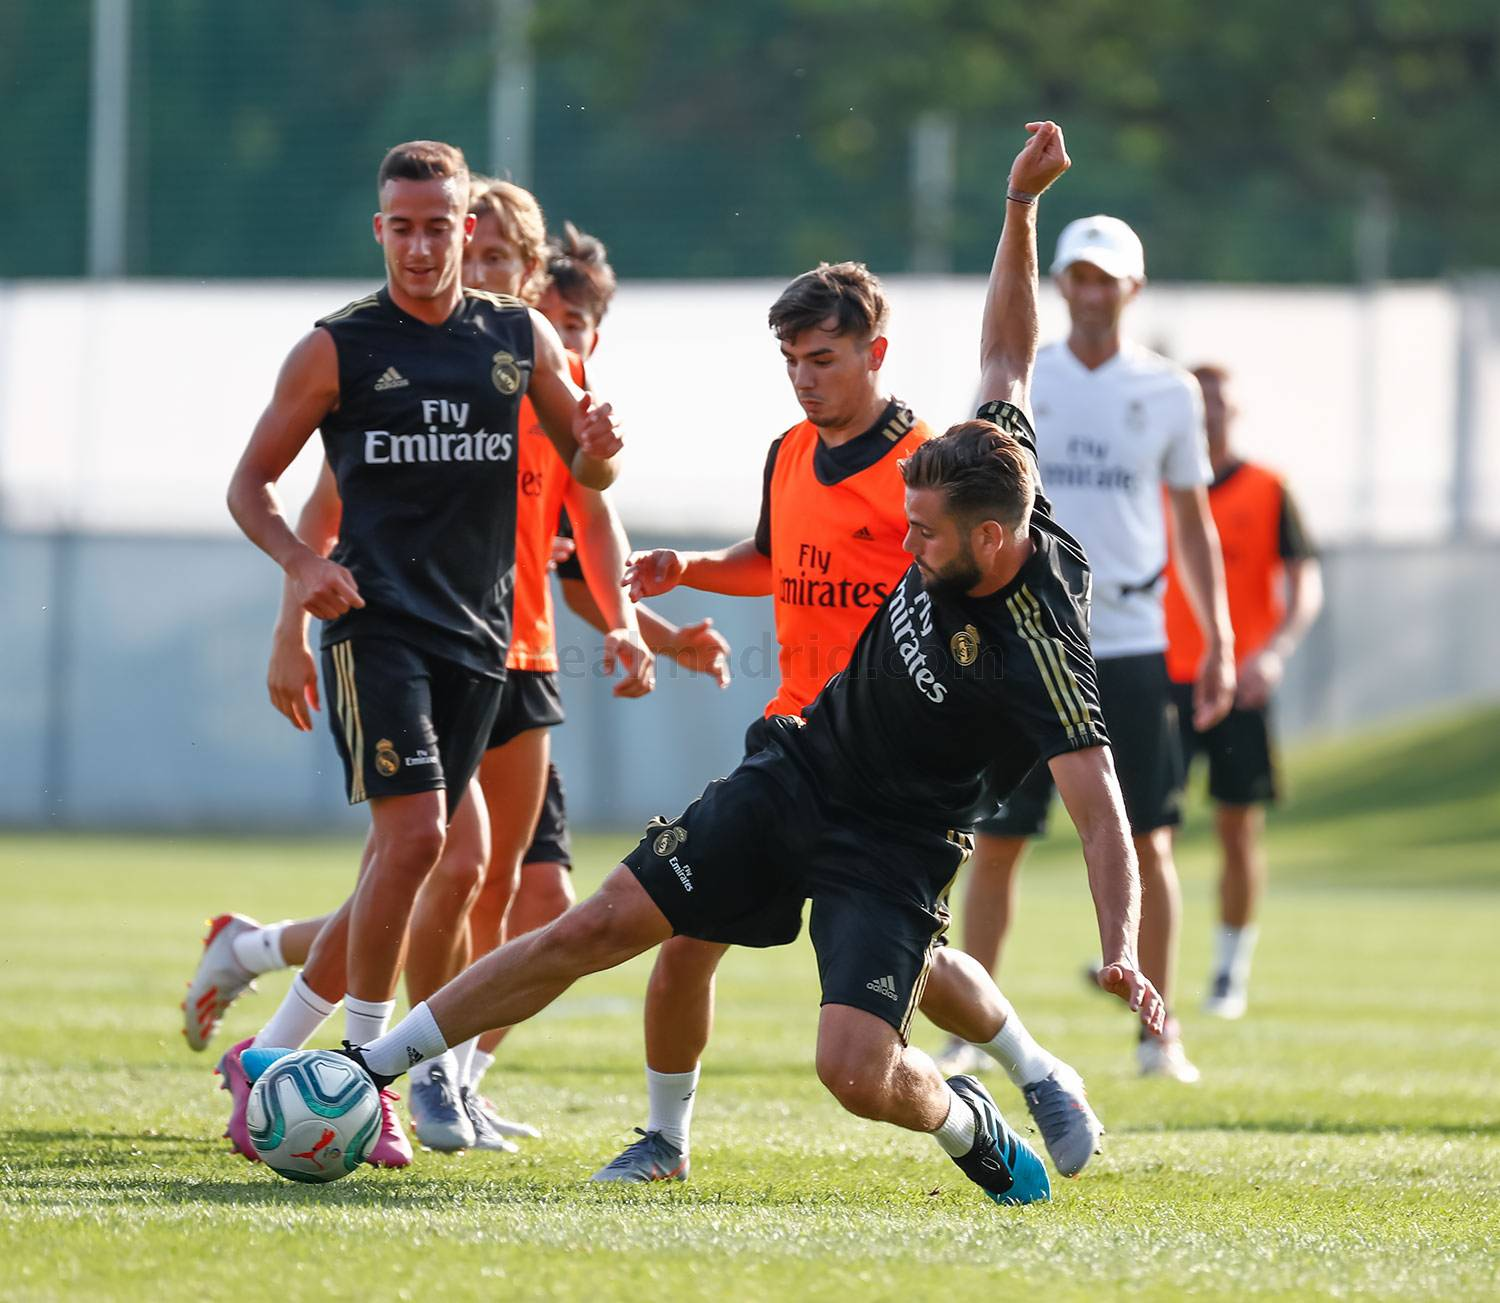 Real Madrid - Entrenamiento del Real Madrid en Montreal - 11-07-2019